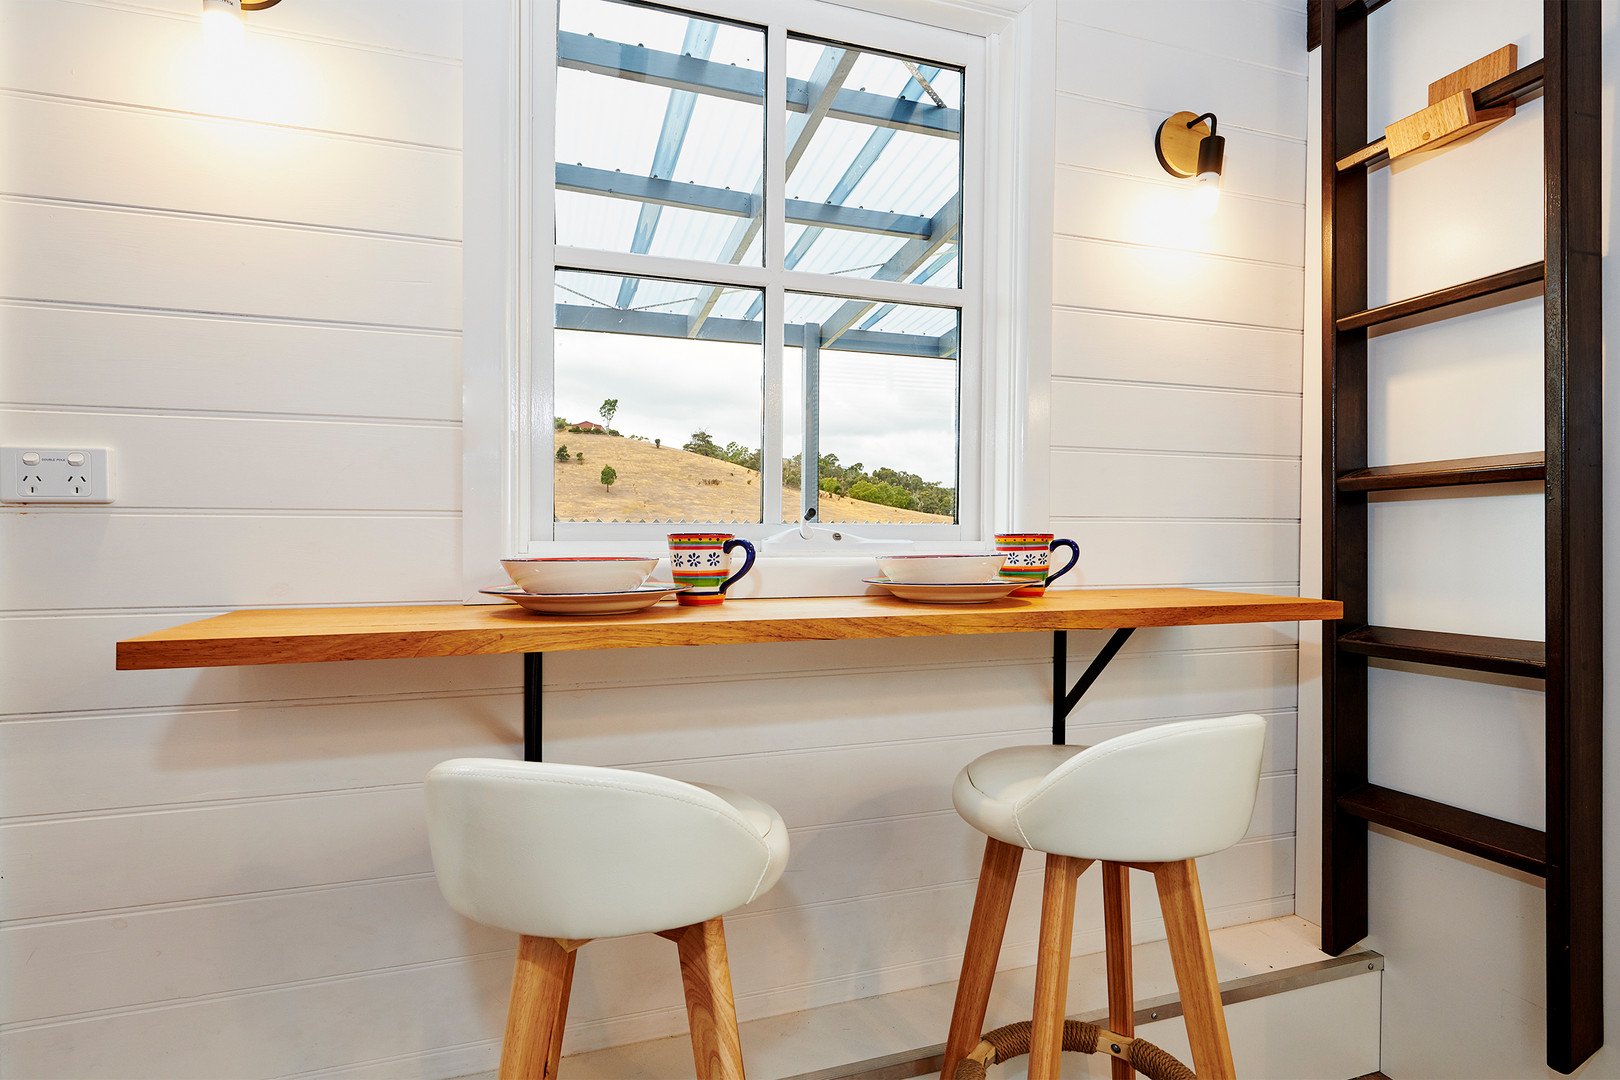 breakfast bar with chairs